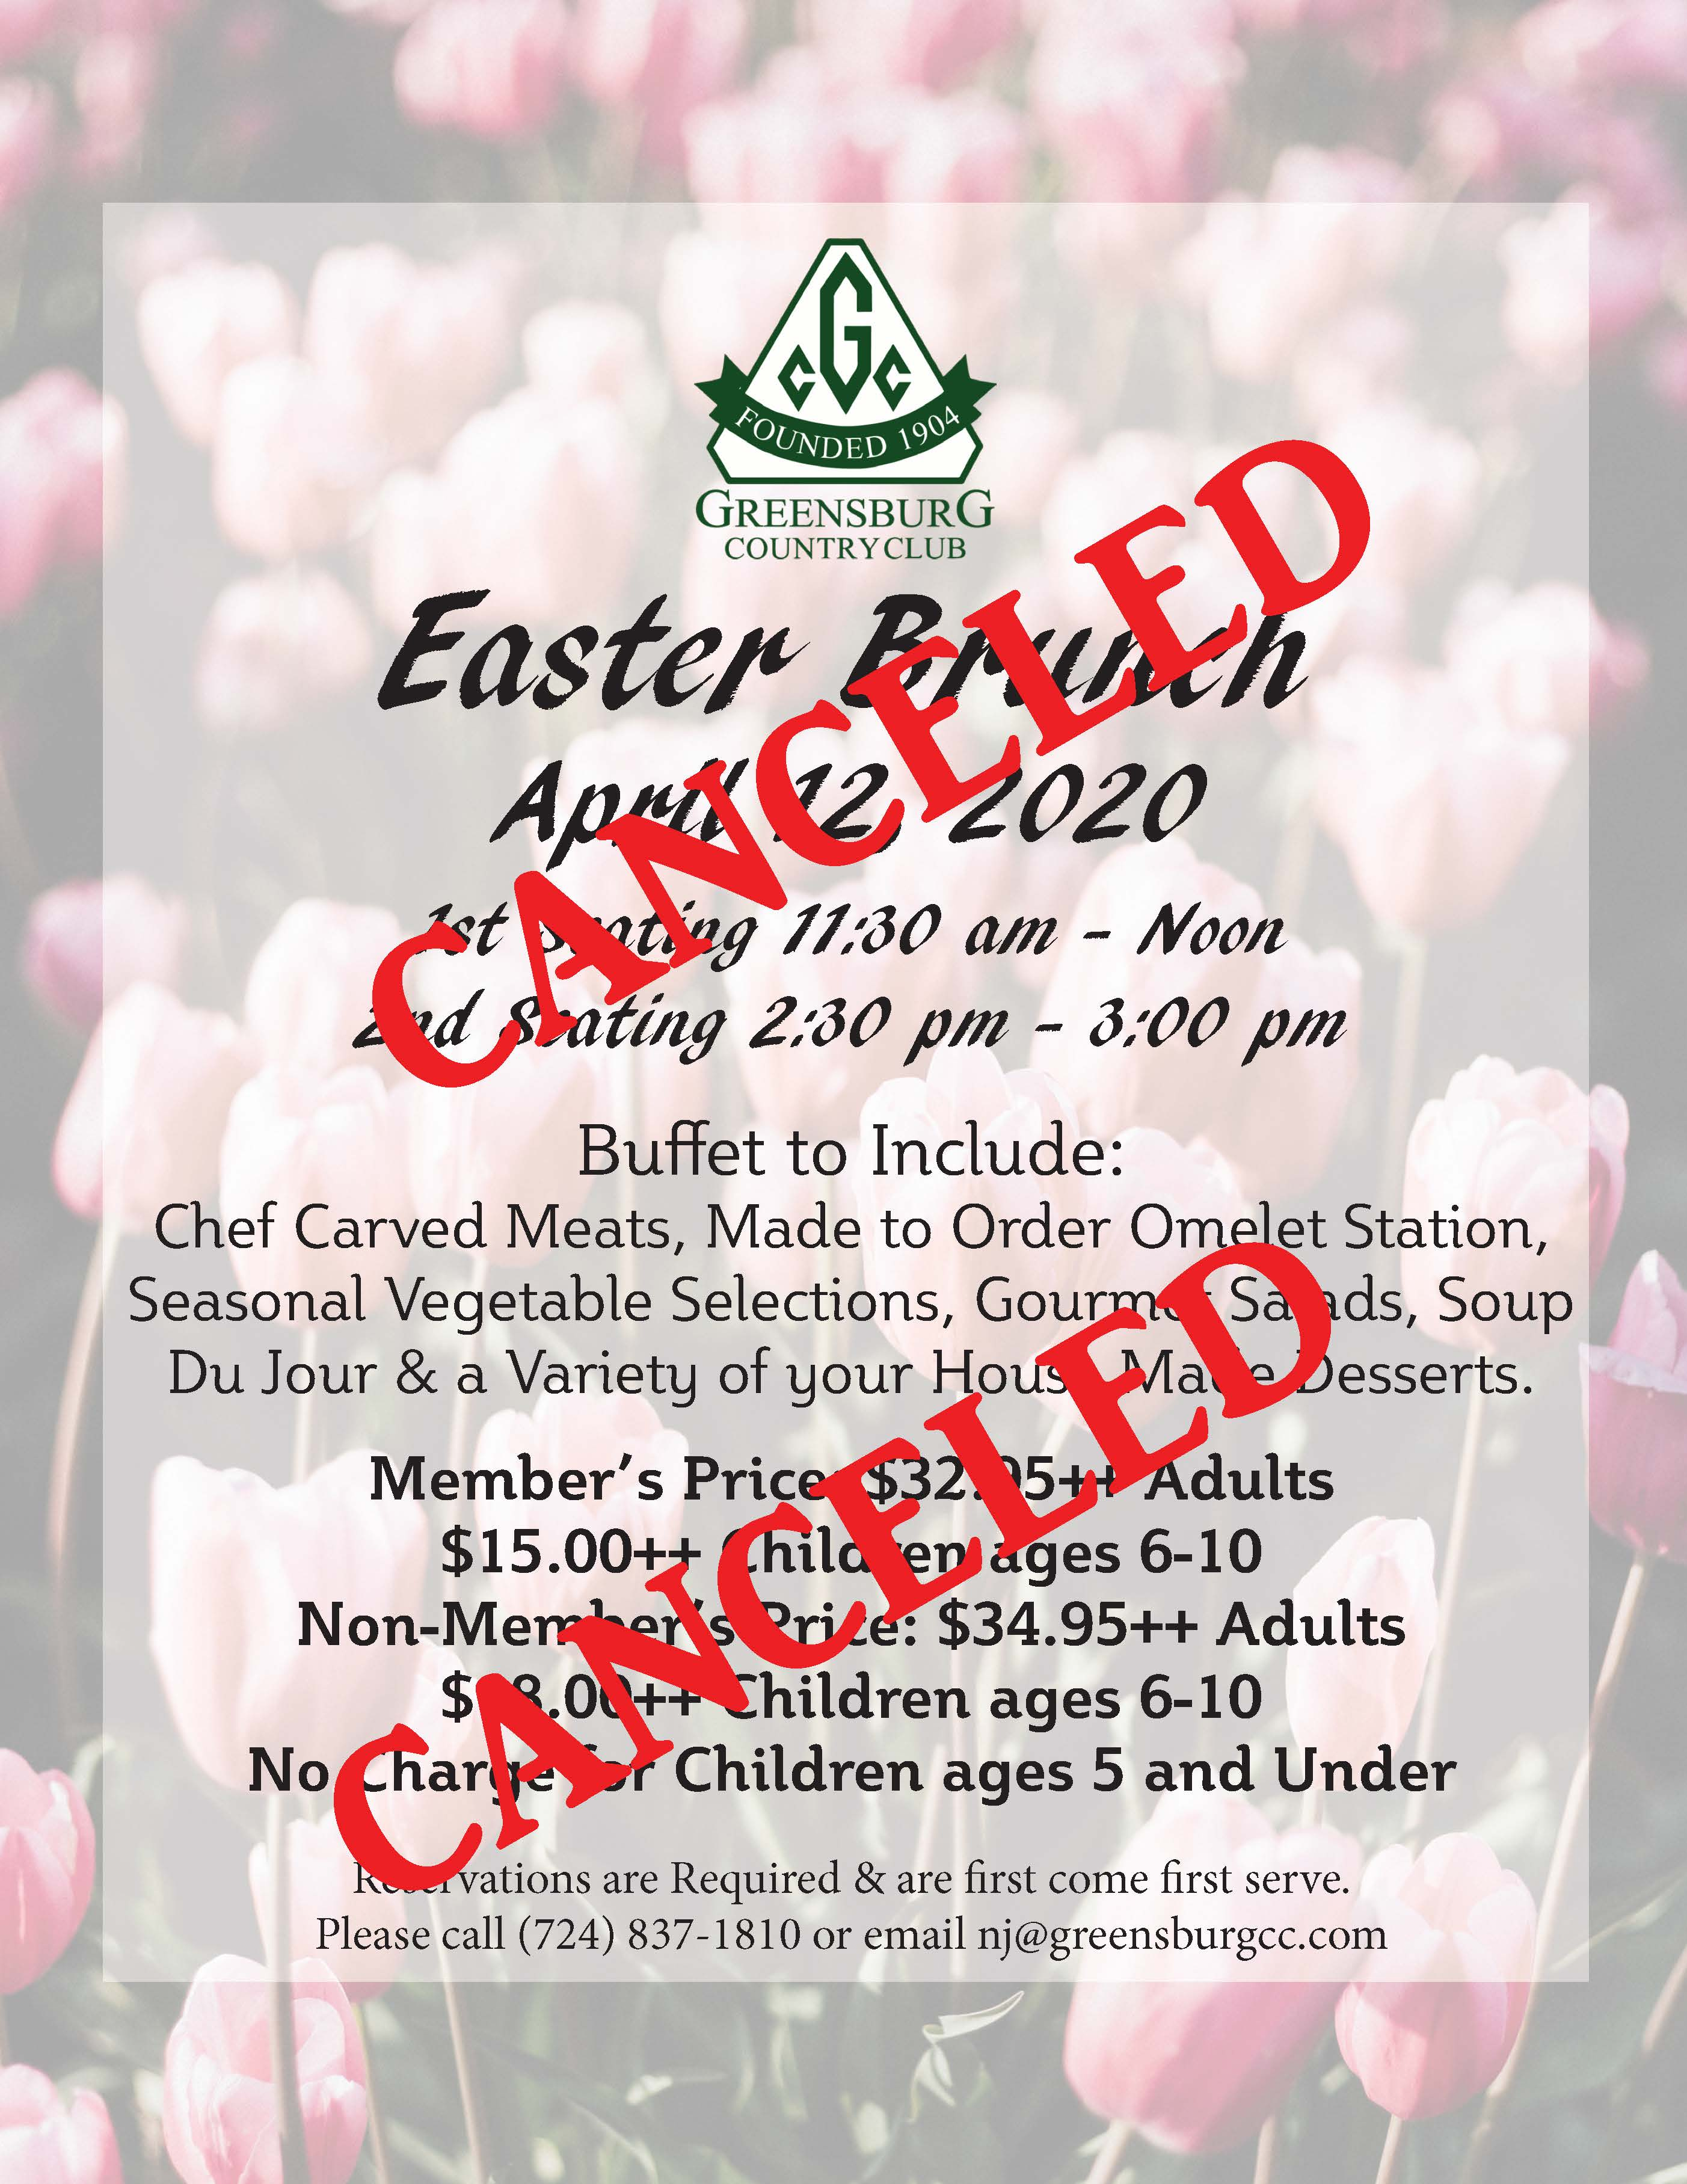 Easter Brunch flyer 2020 Canceled